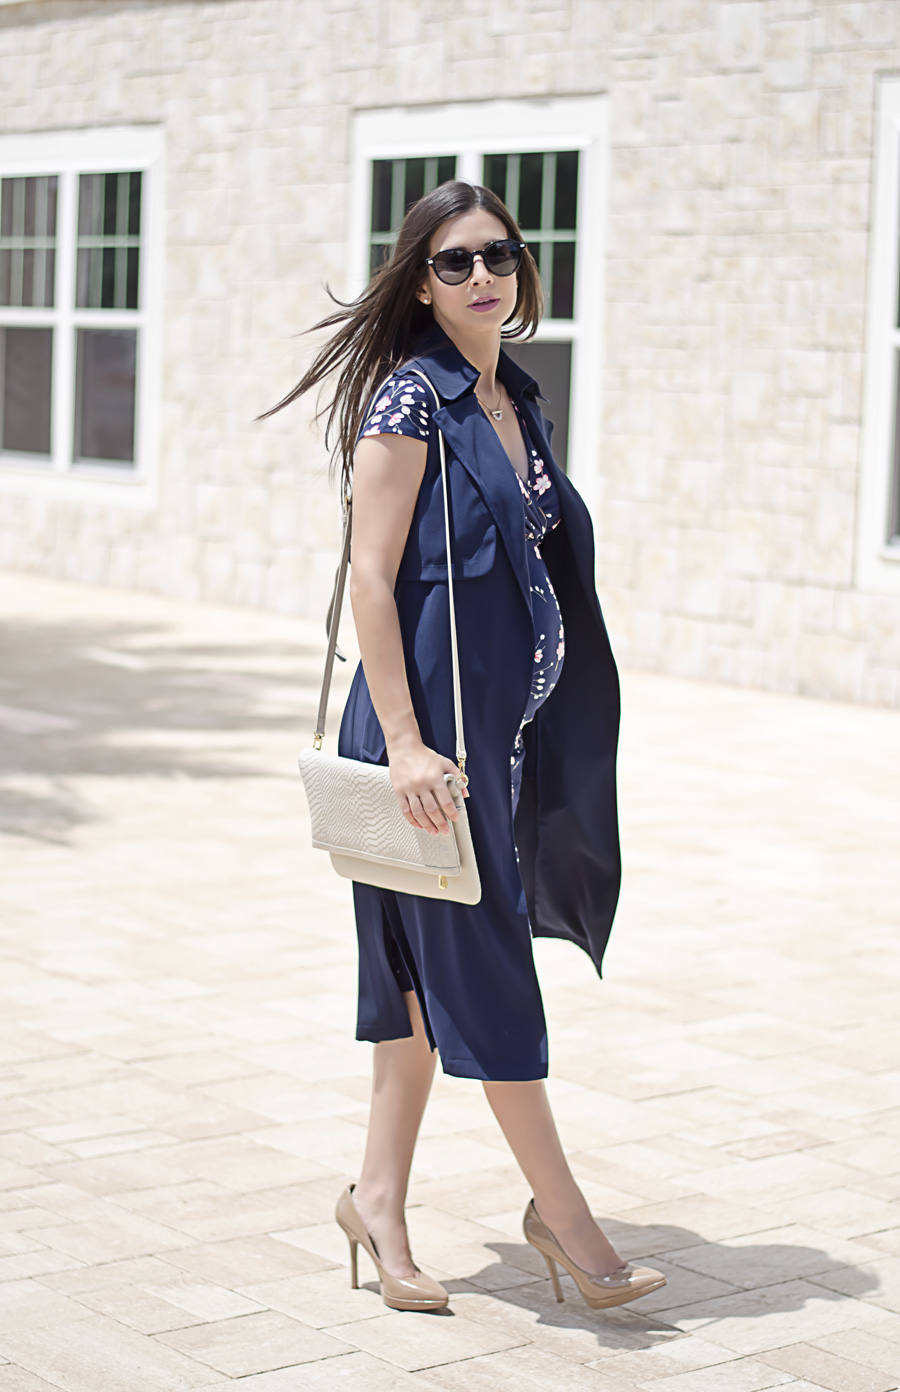 5 Tips to Make a Floral Dress Look Professional, Dorothy Perkins Floral Maternity Dress and Navy Sleeveless Trench Coat - b